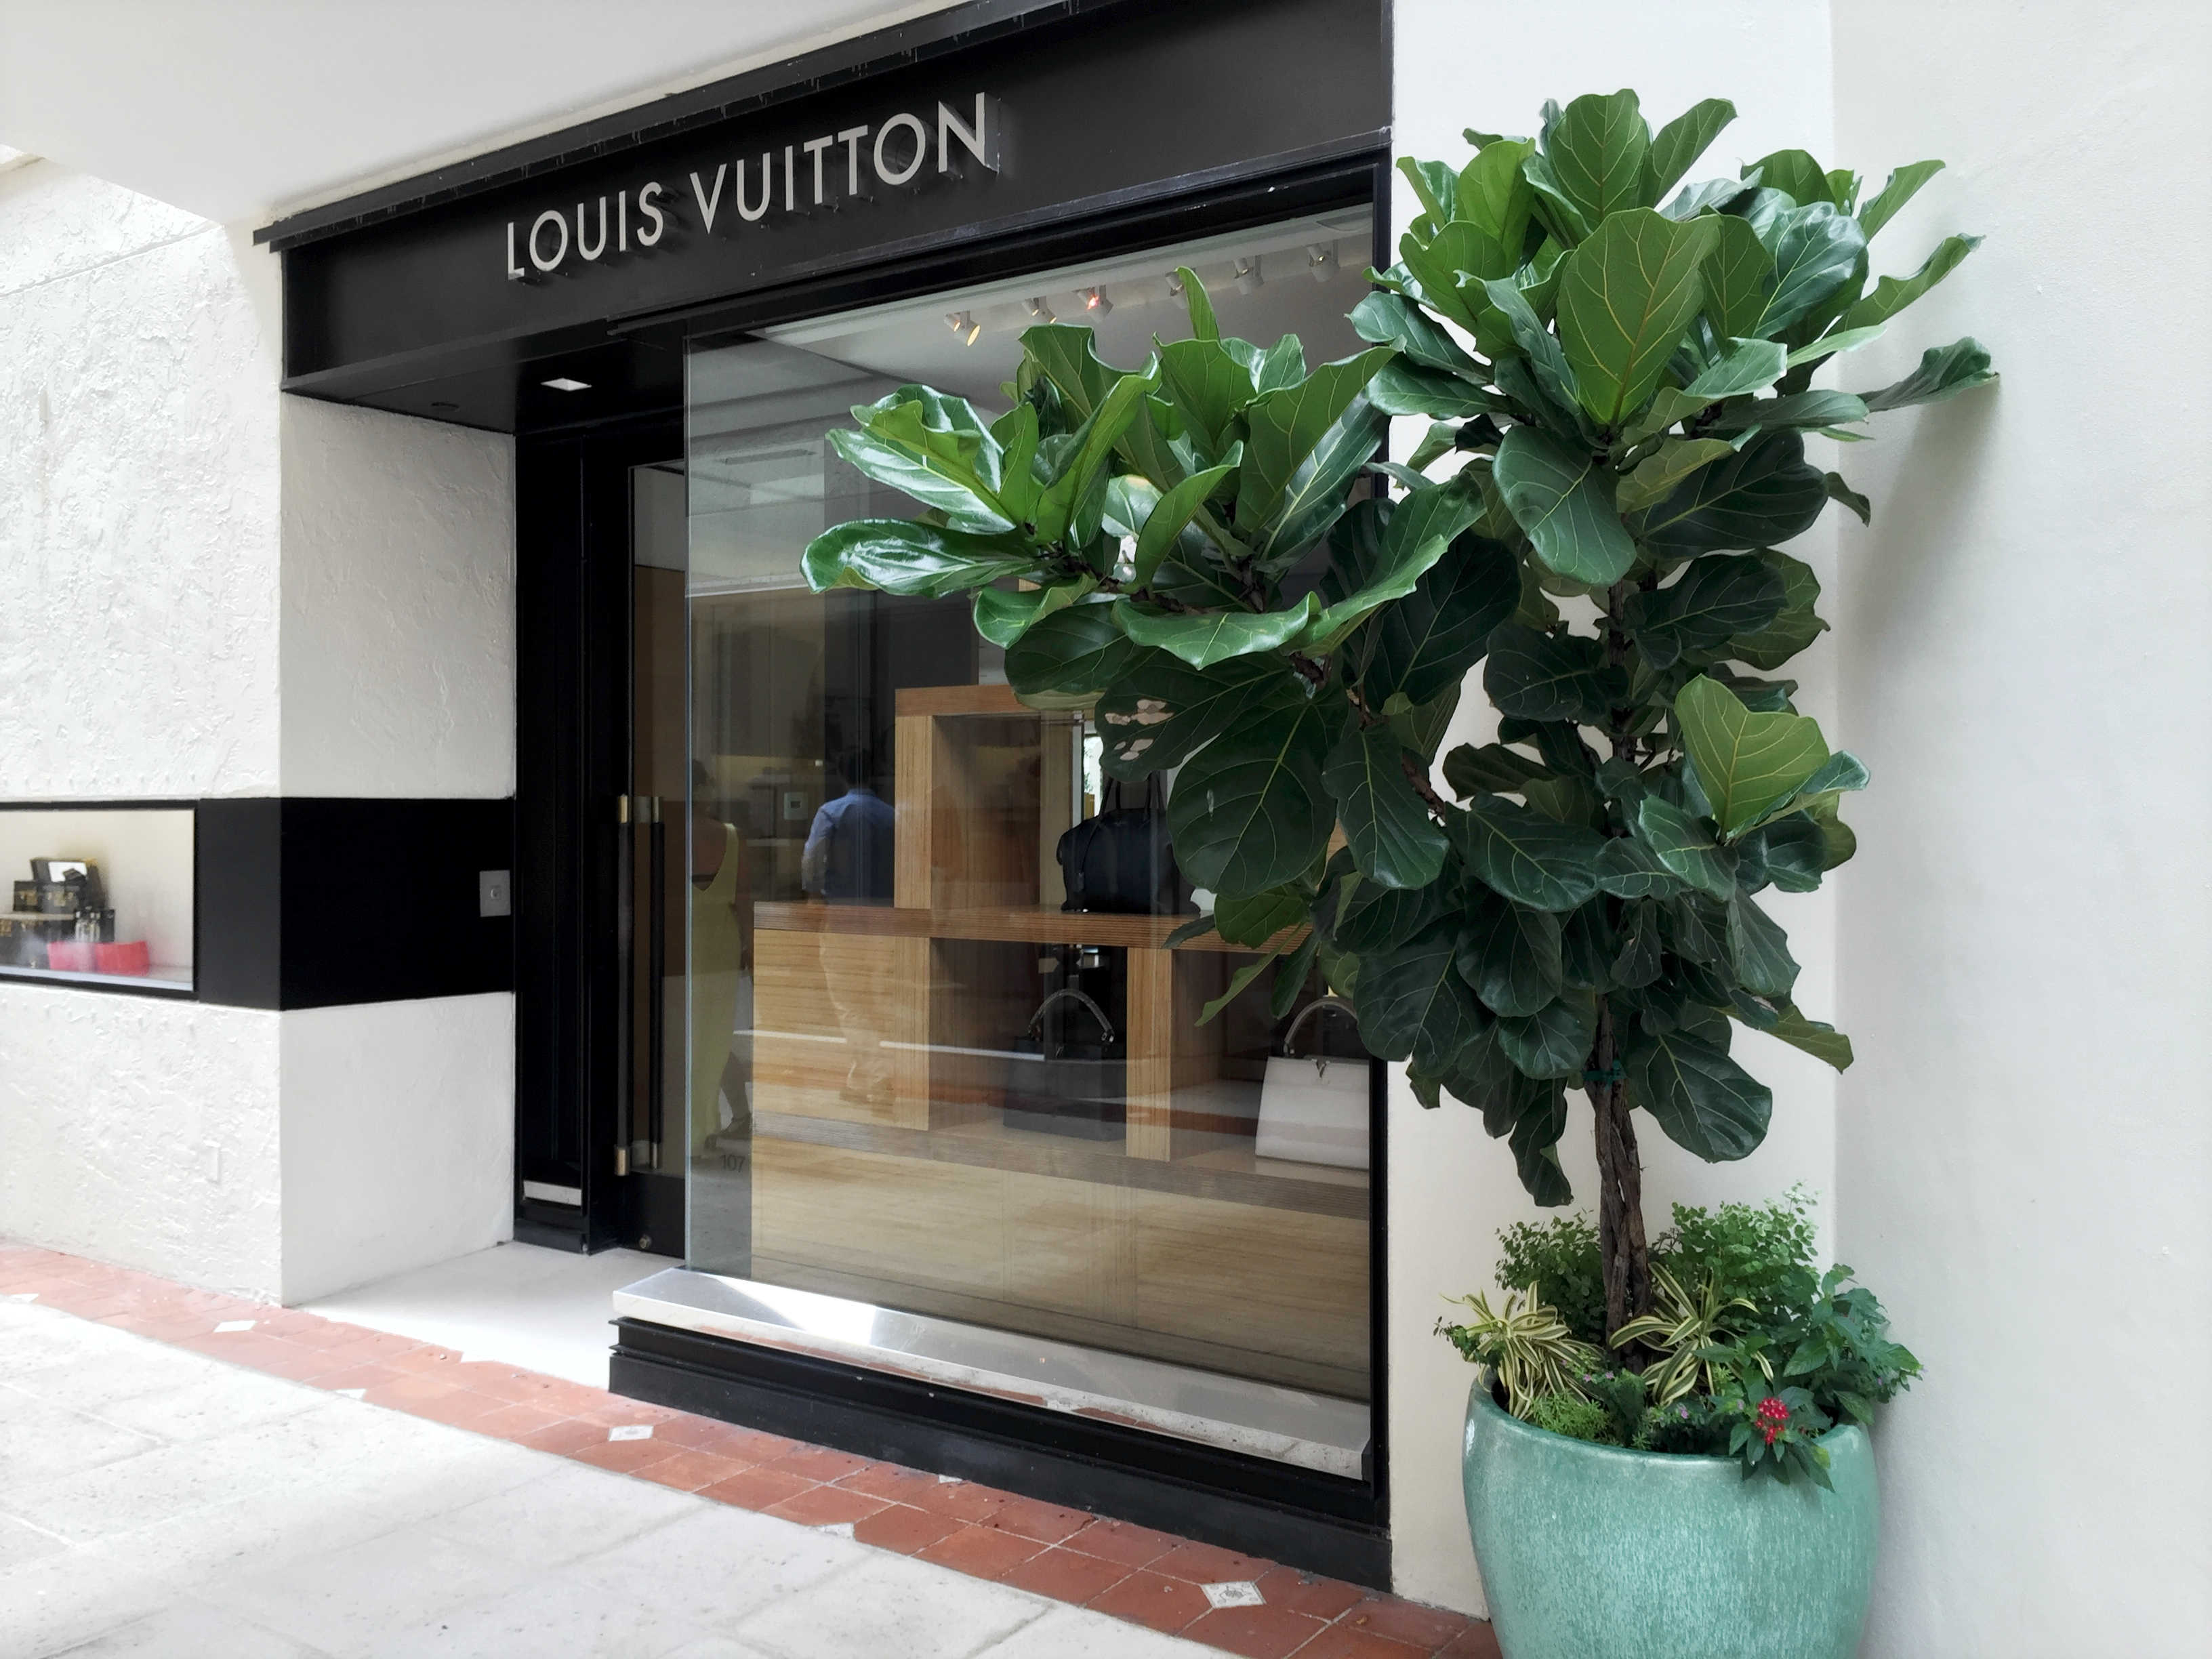 Glazed turquois planters with fiddle leaf fig - Worth Ave, Palm Beach, FL - High End Retail - Landscape Design